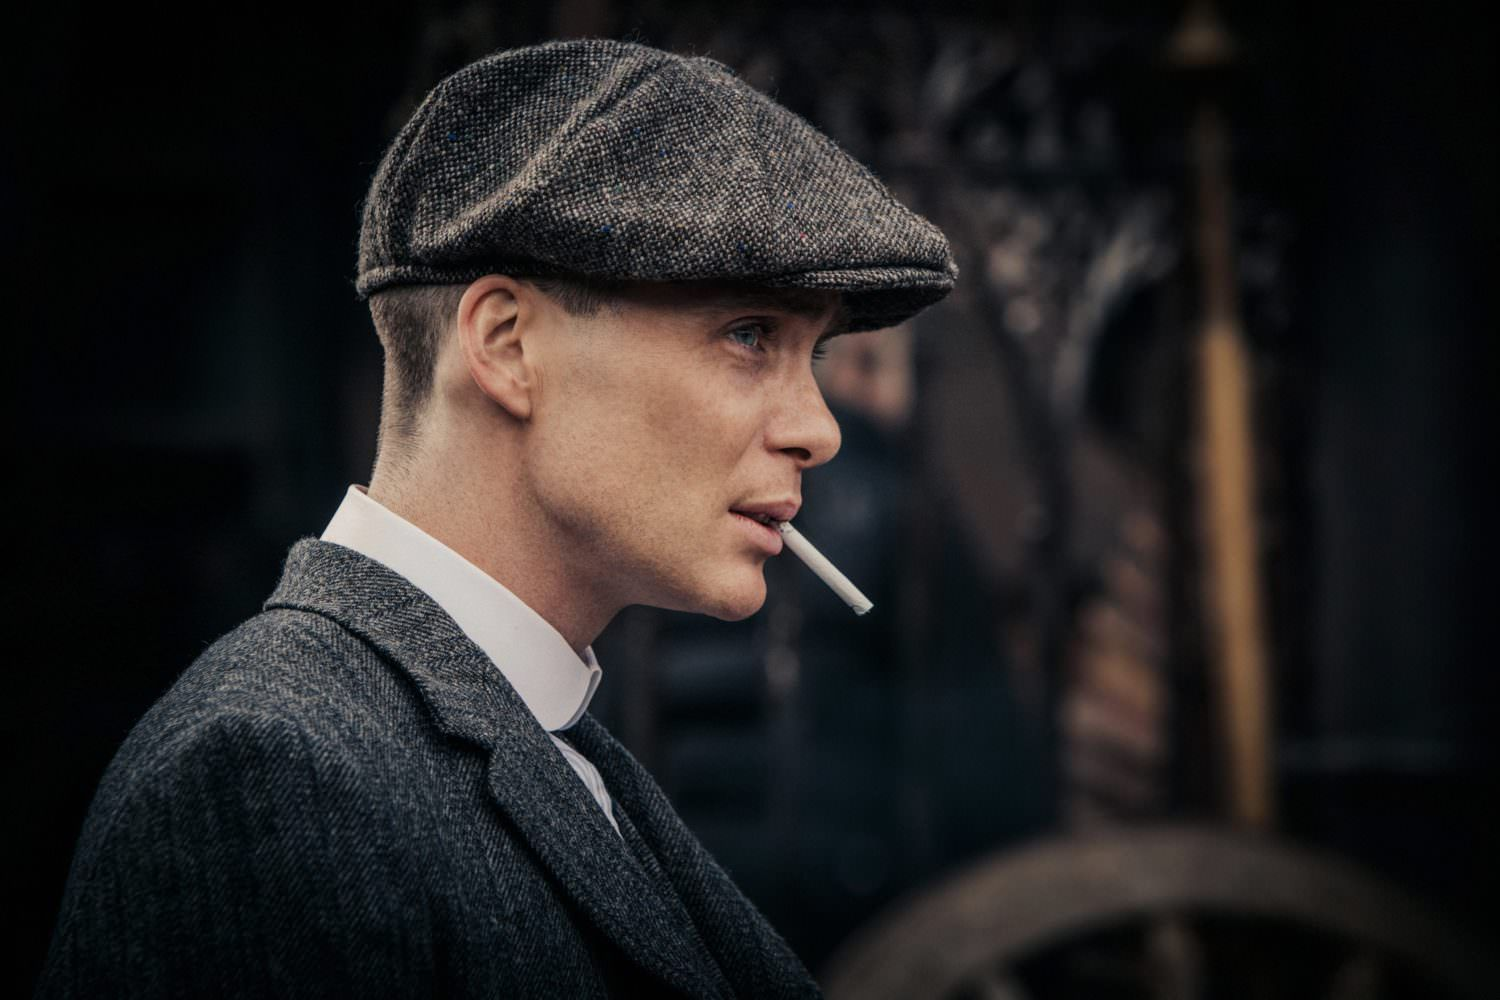 a882fb6dd Thomas Shelby wearing a grey Donegal Tweed 8-panel flat cap - Peaky ...